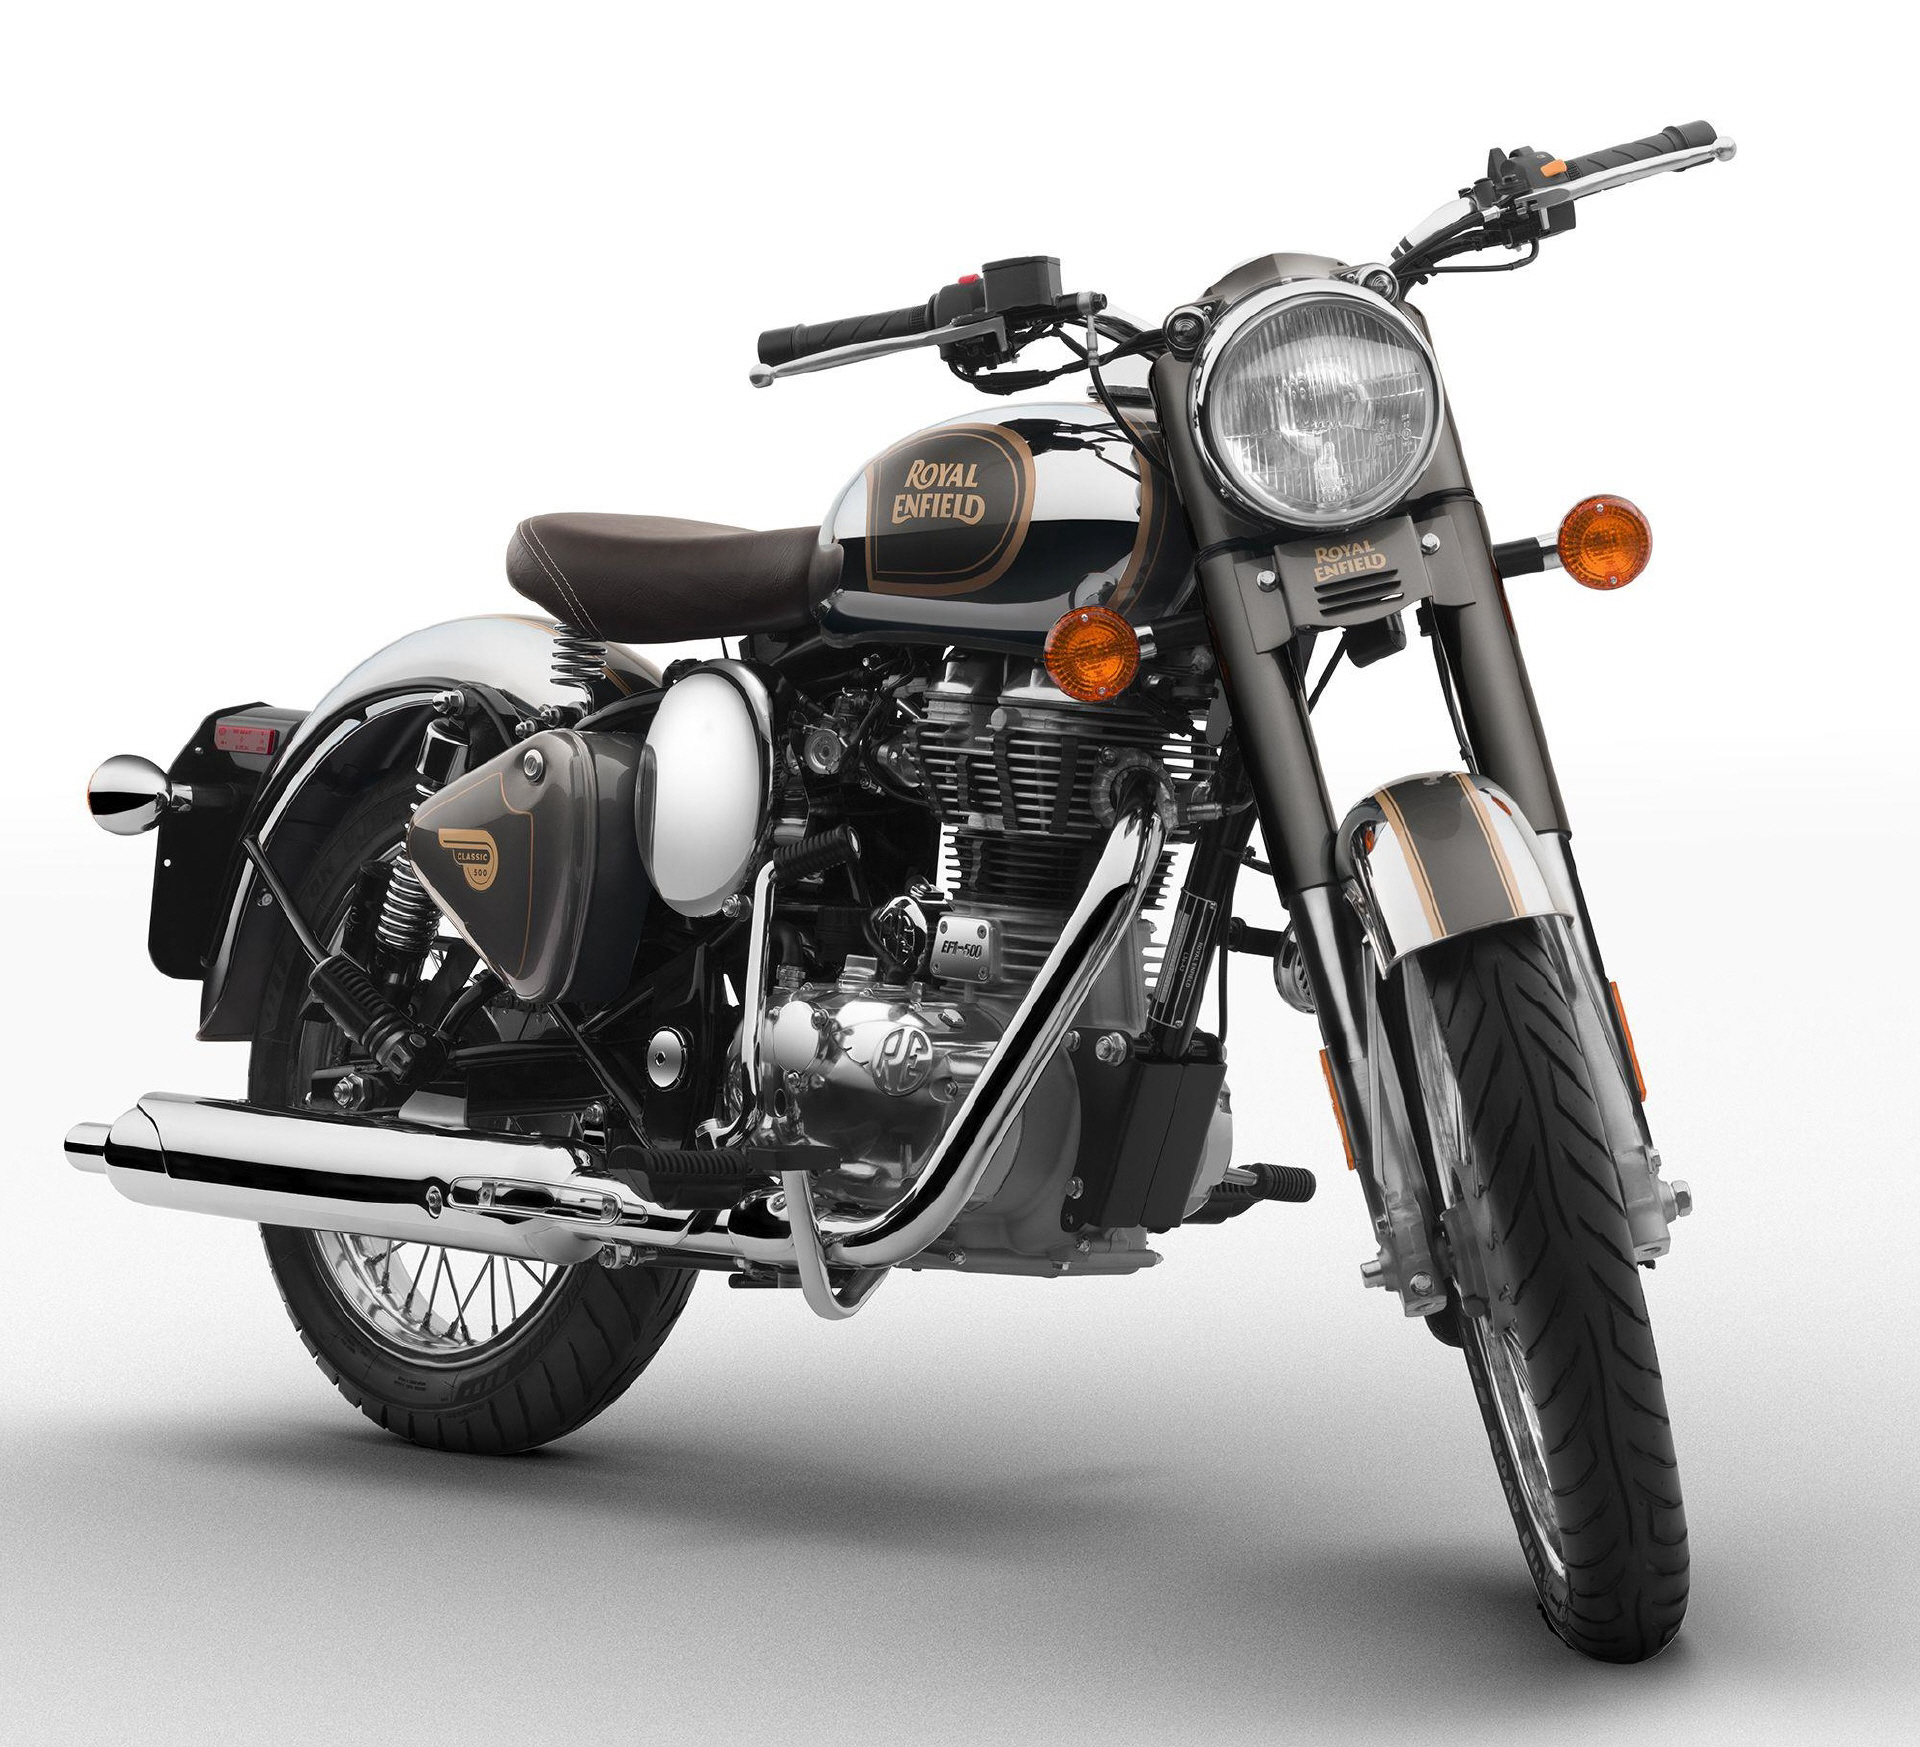 royalenfield_classic_chrome_graphite_02jpg